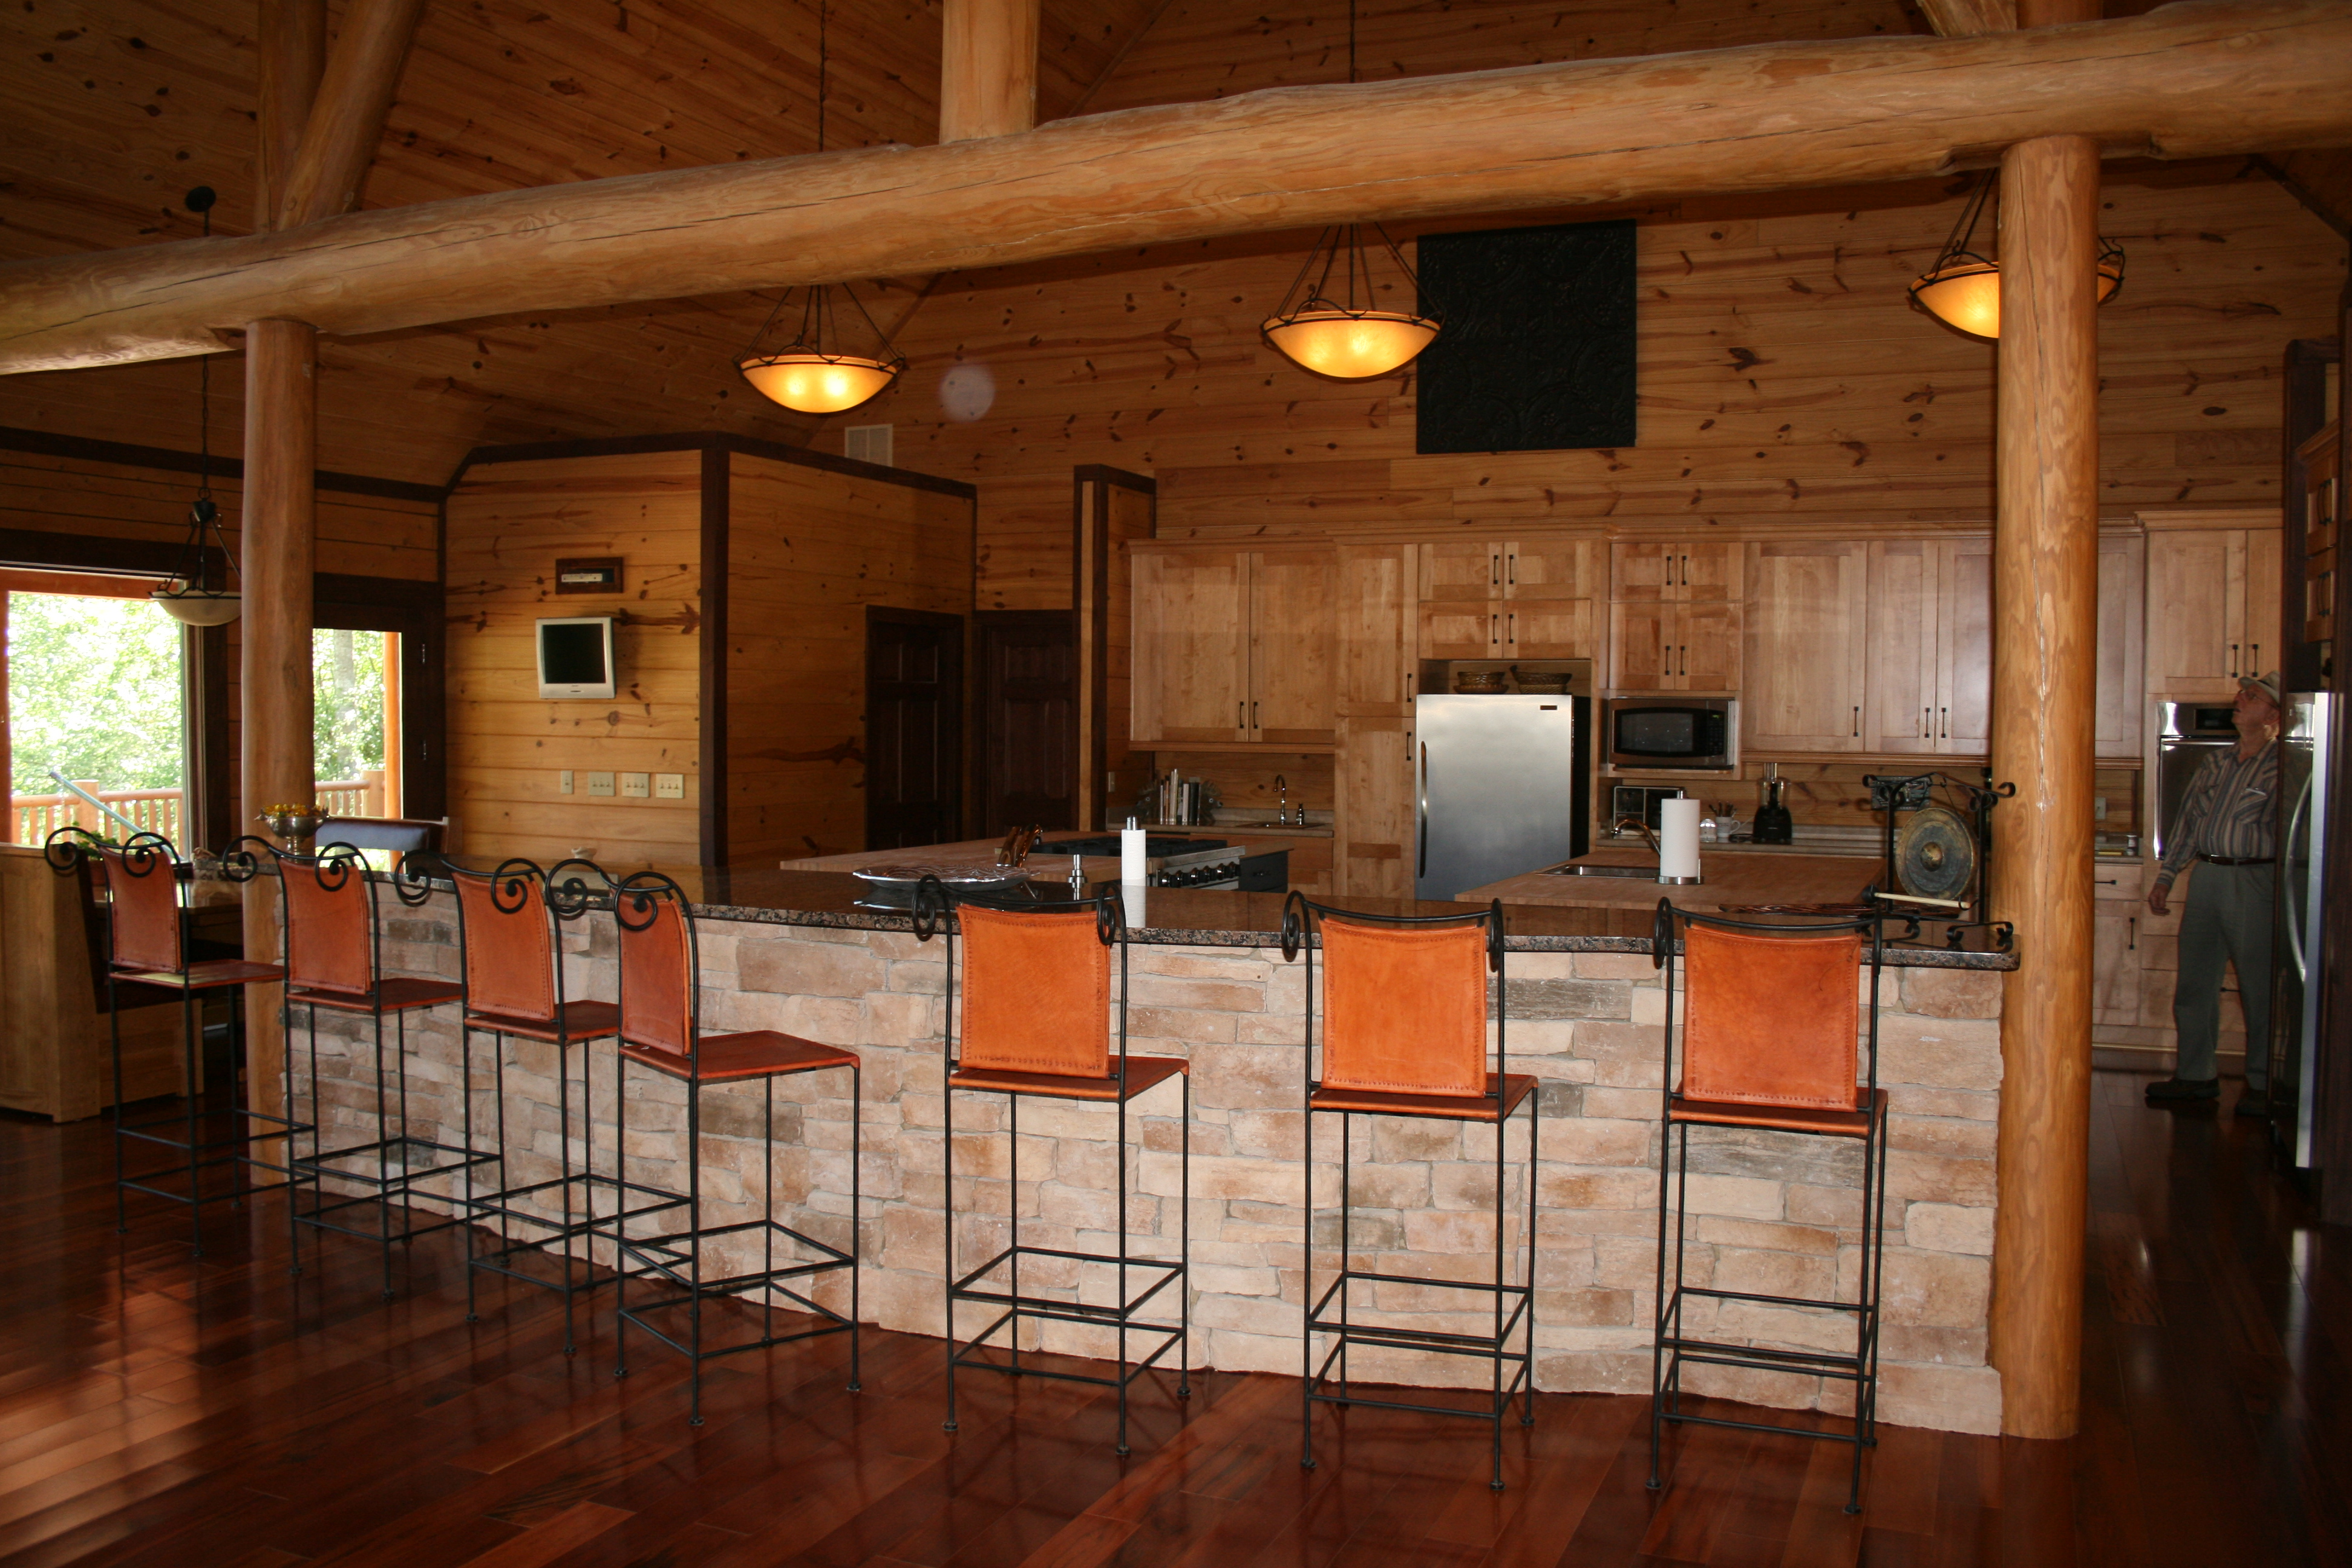 Cabinets | Flint River Log Homes